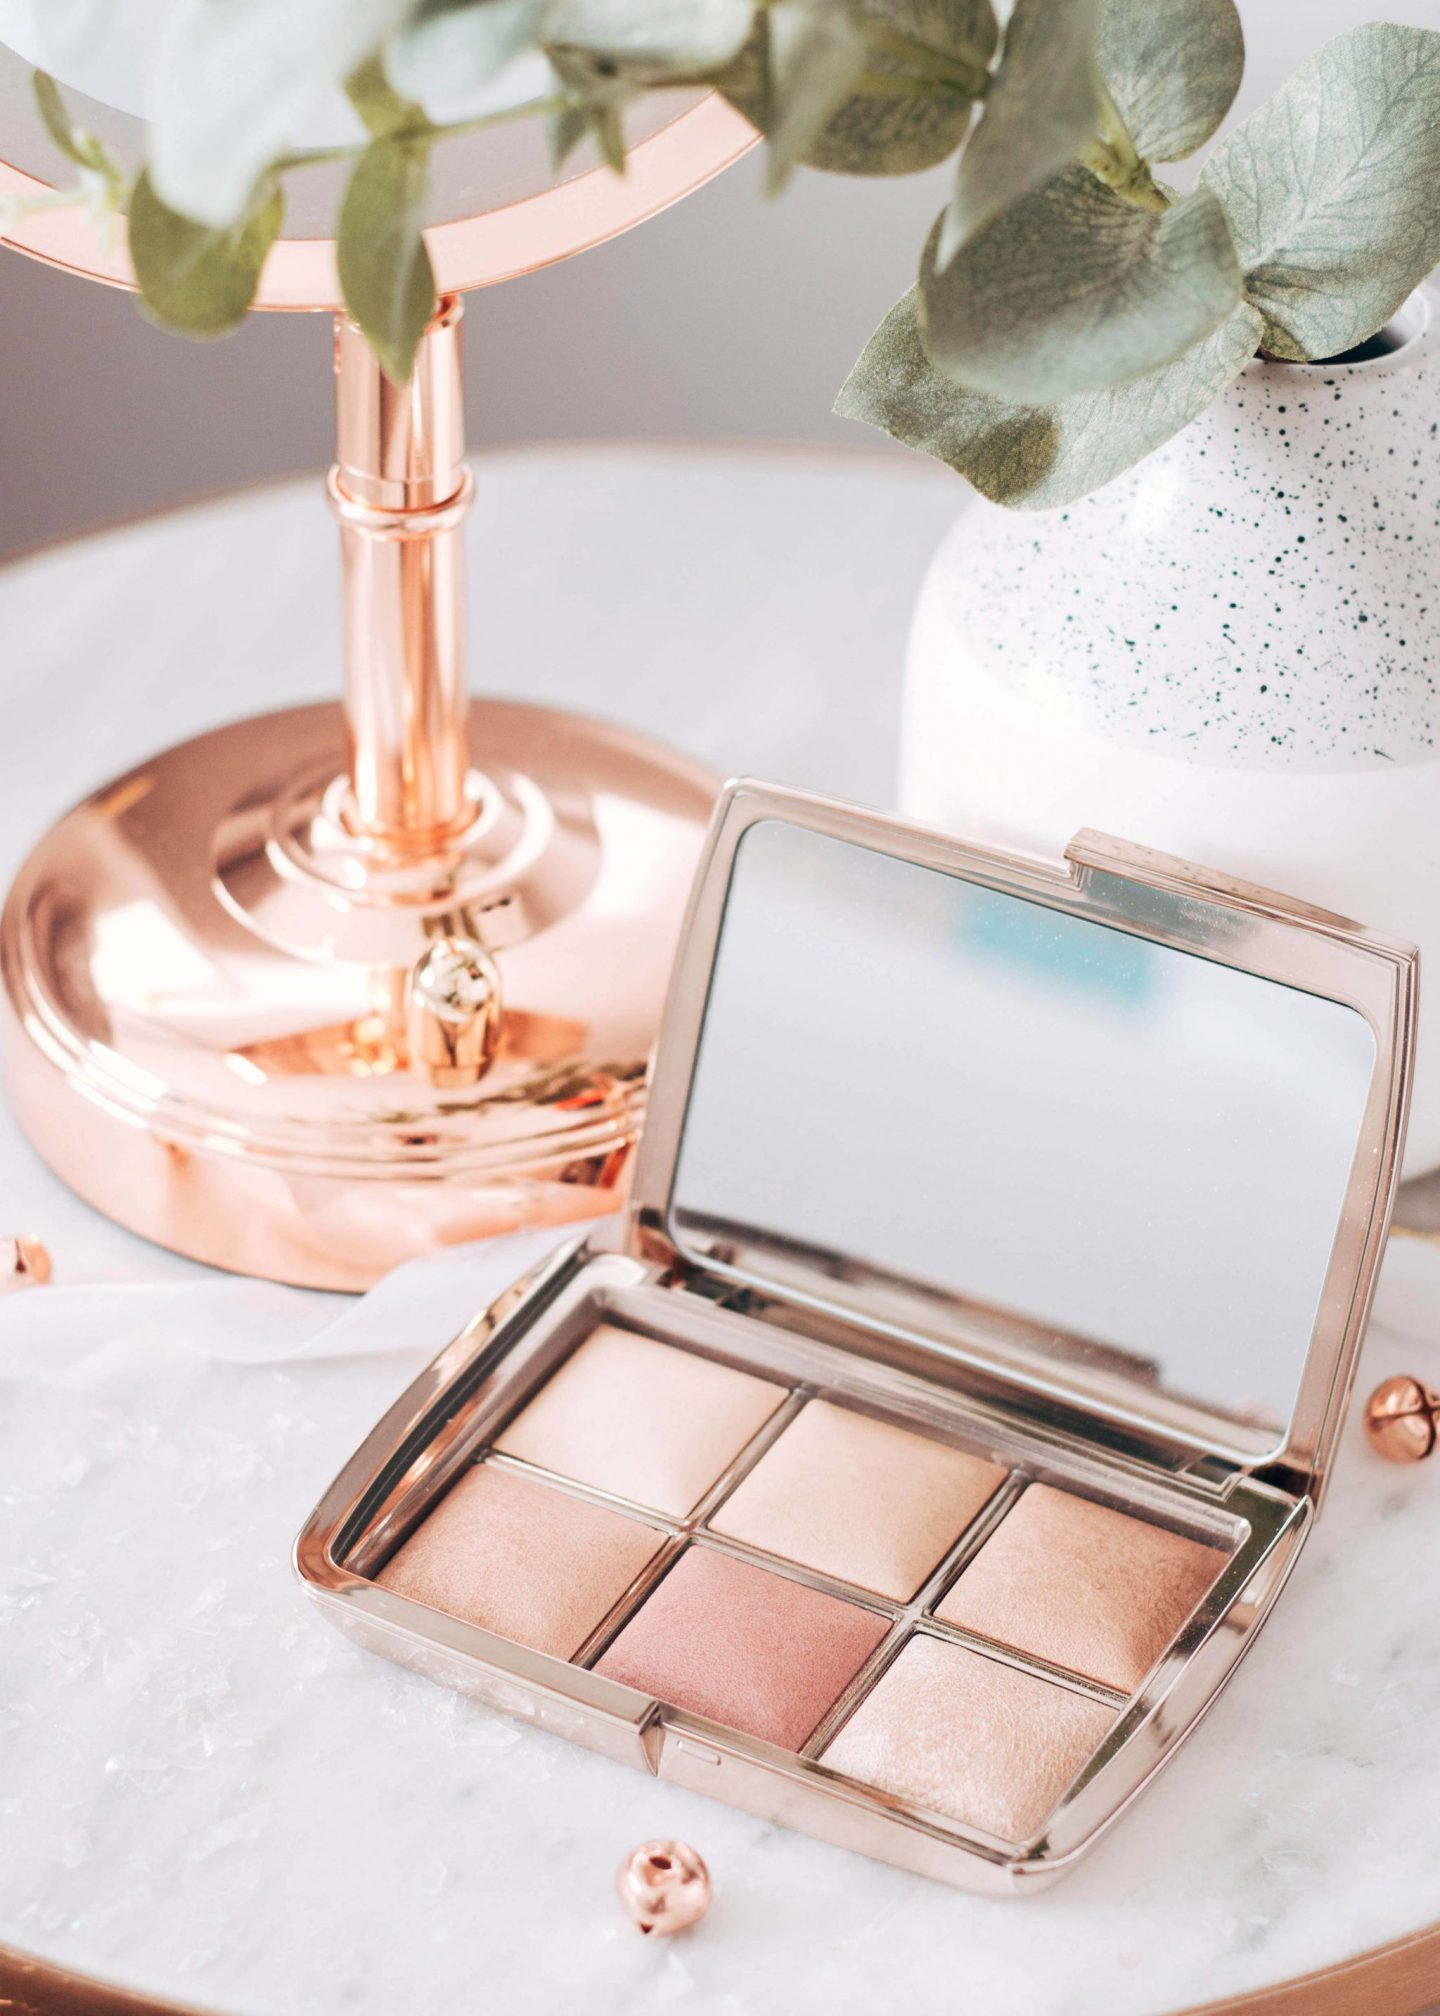 forever september, hourglass, ambient light edit, unlocked palette, powders, blusher, bronzer, highlighter, luxury, luxurious product, makeup, beauty, lifestyle